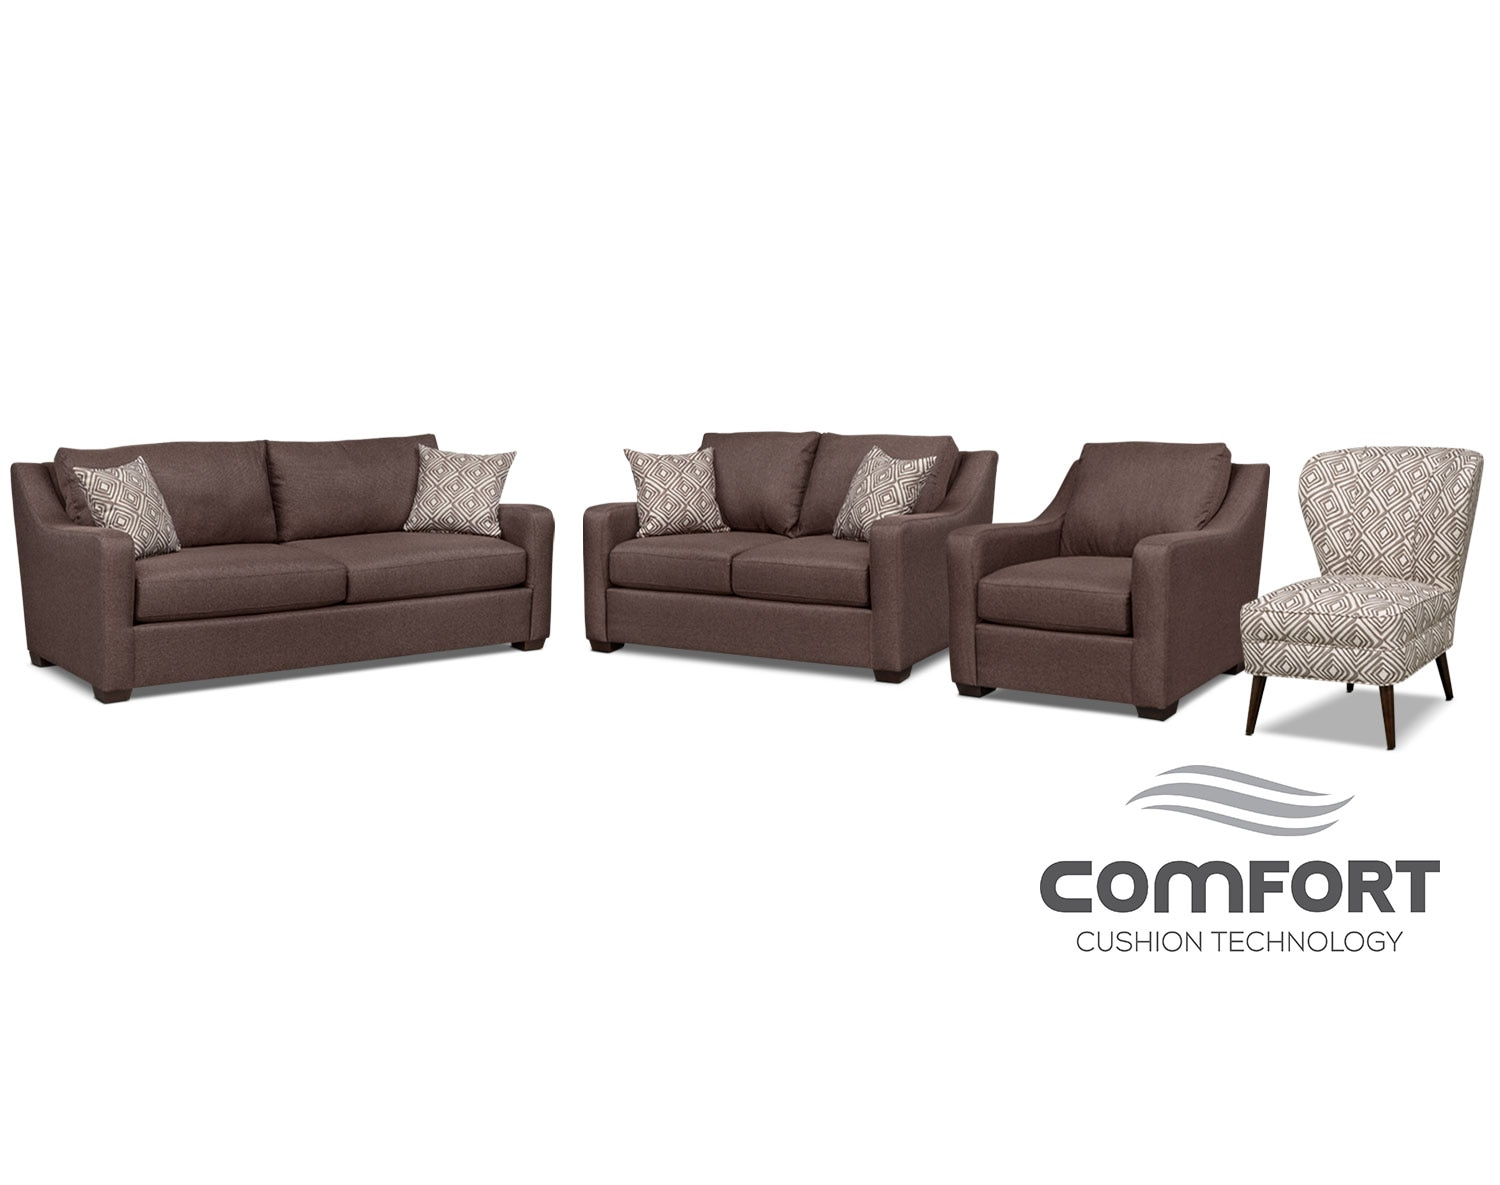 The Jules Comfort Collection - Brown